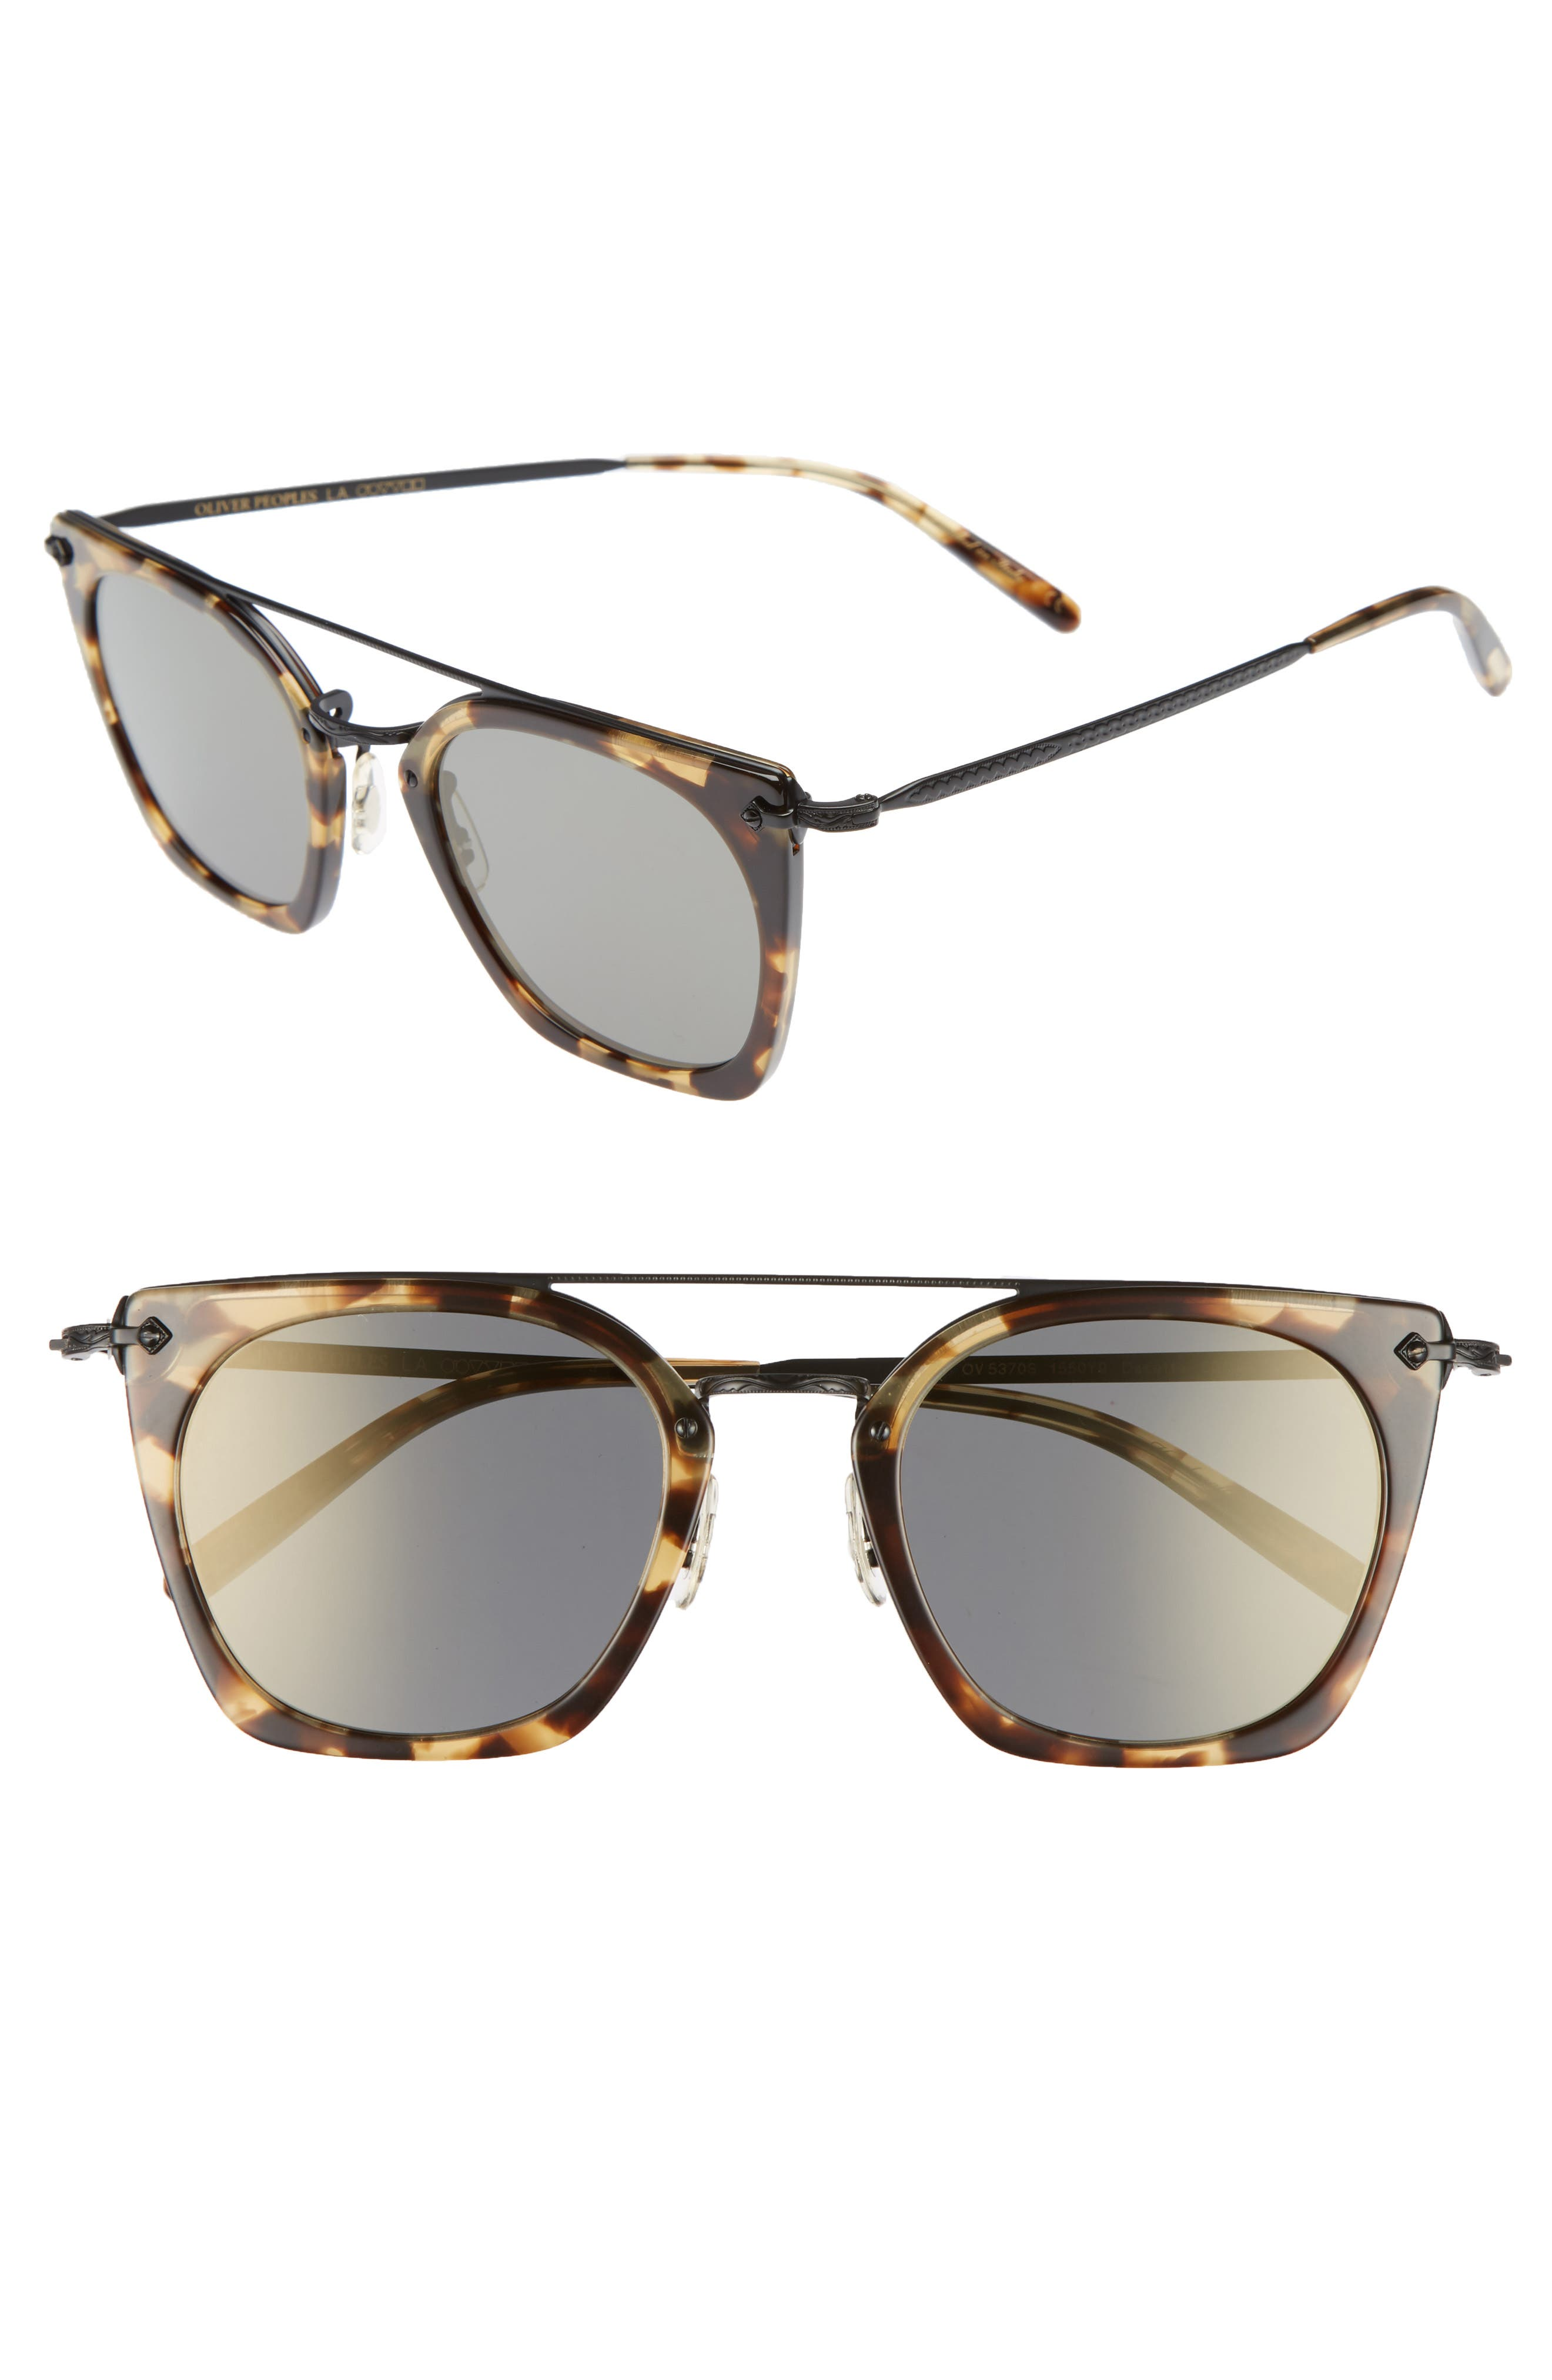 Dacette 50mm Square Aviator Sunglasses,                         Main,                         color, Hickorty Tortoise